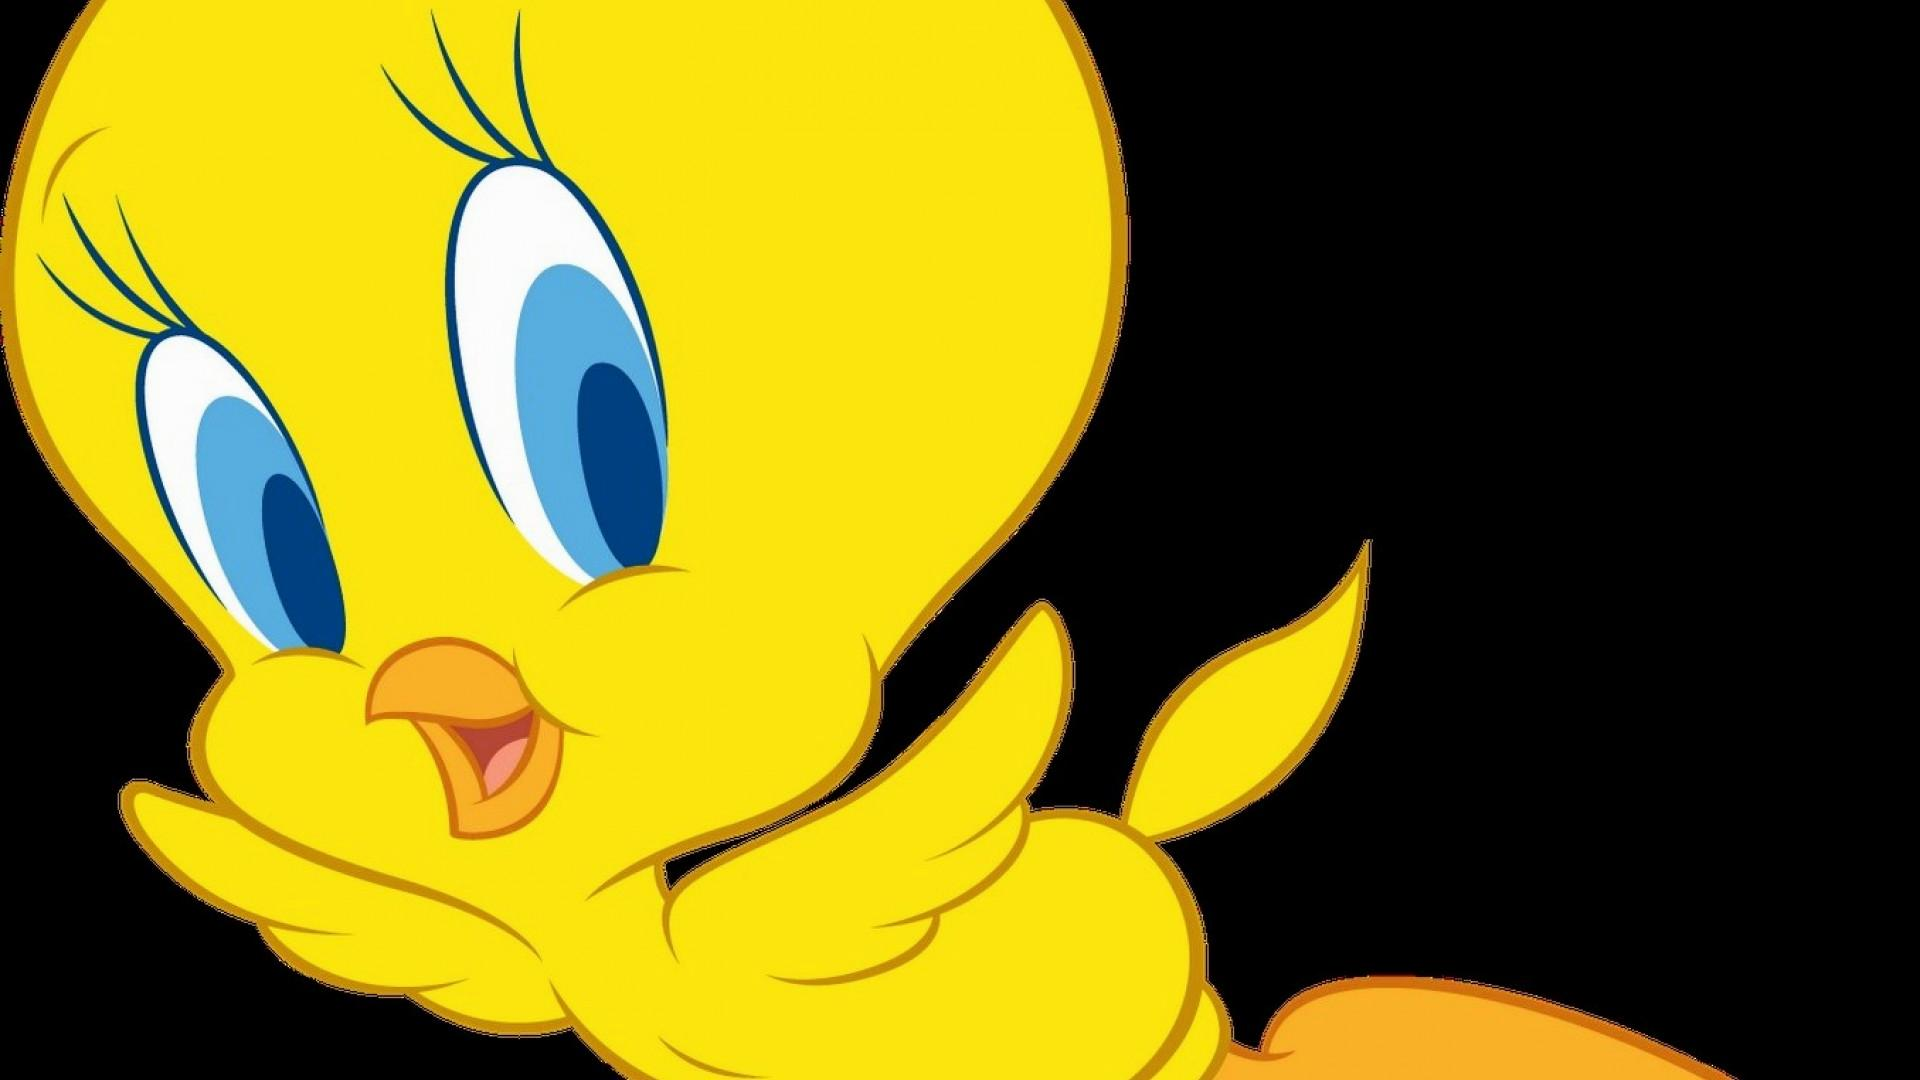 1920x1080 Tweety Hd Images Get Free Top Quality Tweety Hd Images For Your